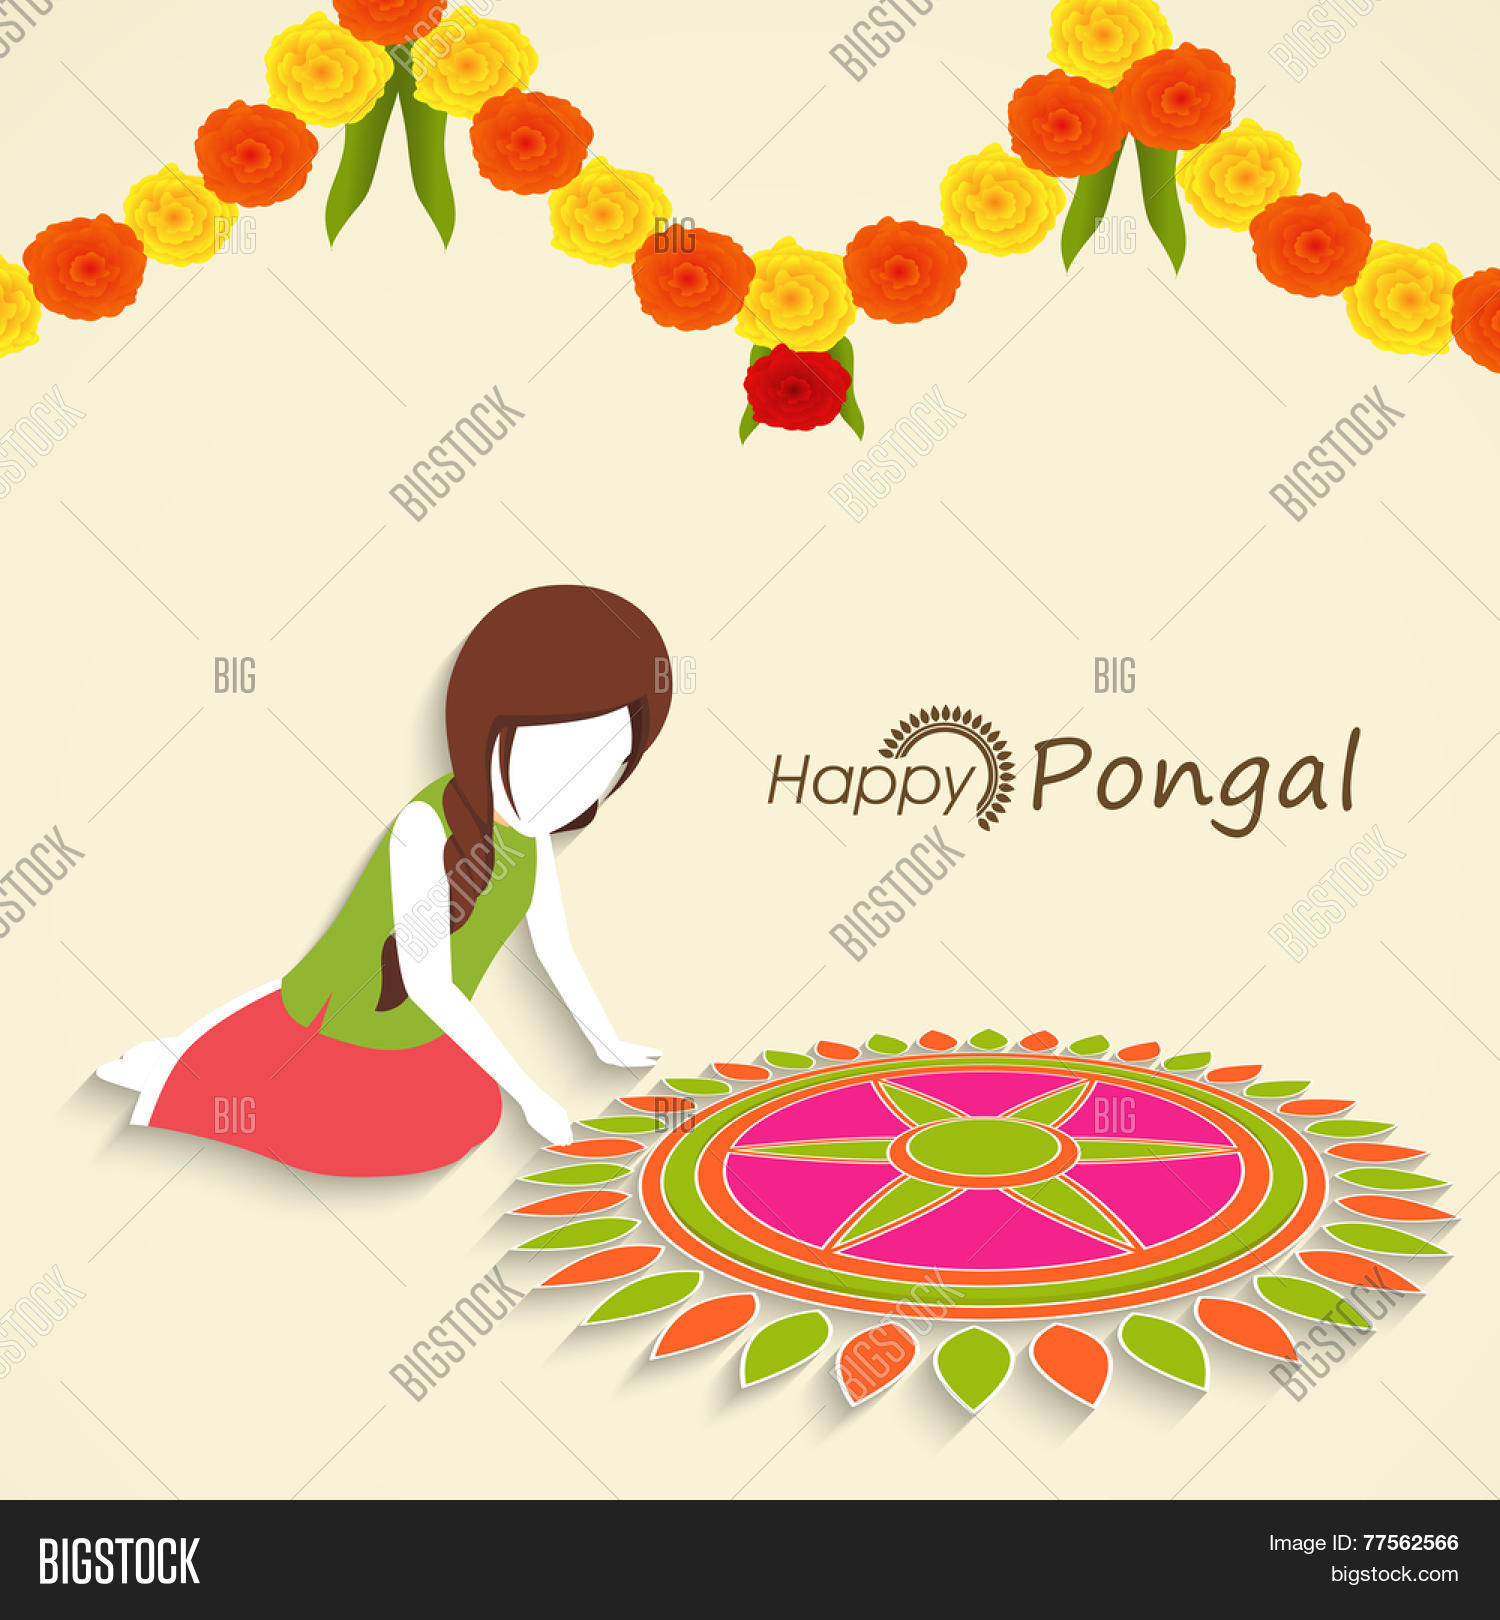 Little Girl Making Floral Design Called Rangoli With Colorful Flowers Decoration For South Indian Harvesting Festival